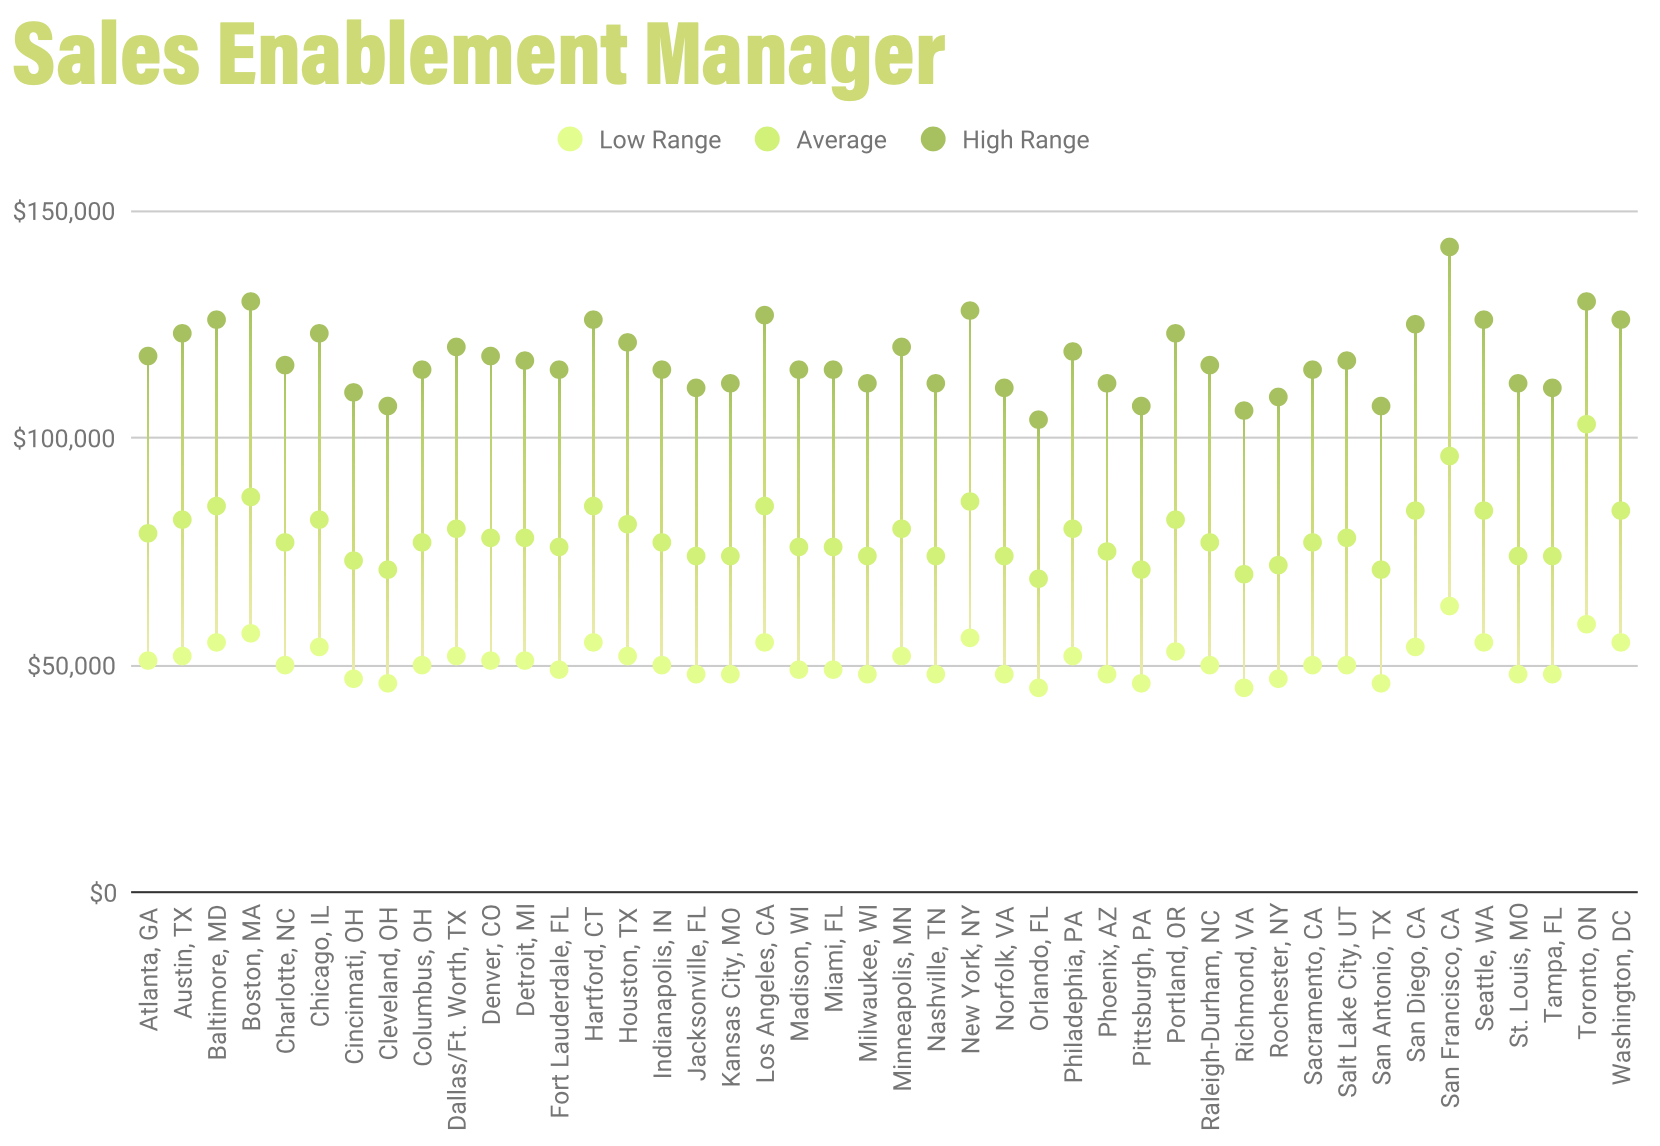 /uploads/2020/01/Sales_Enablement_Manager_Salaries.png